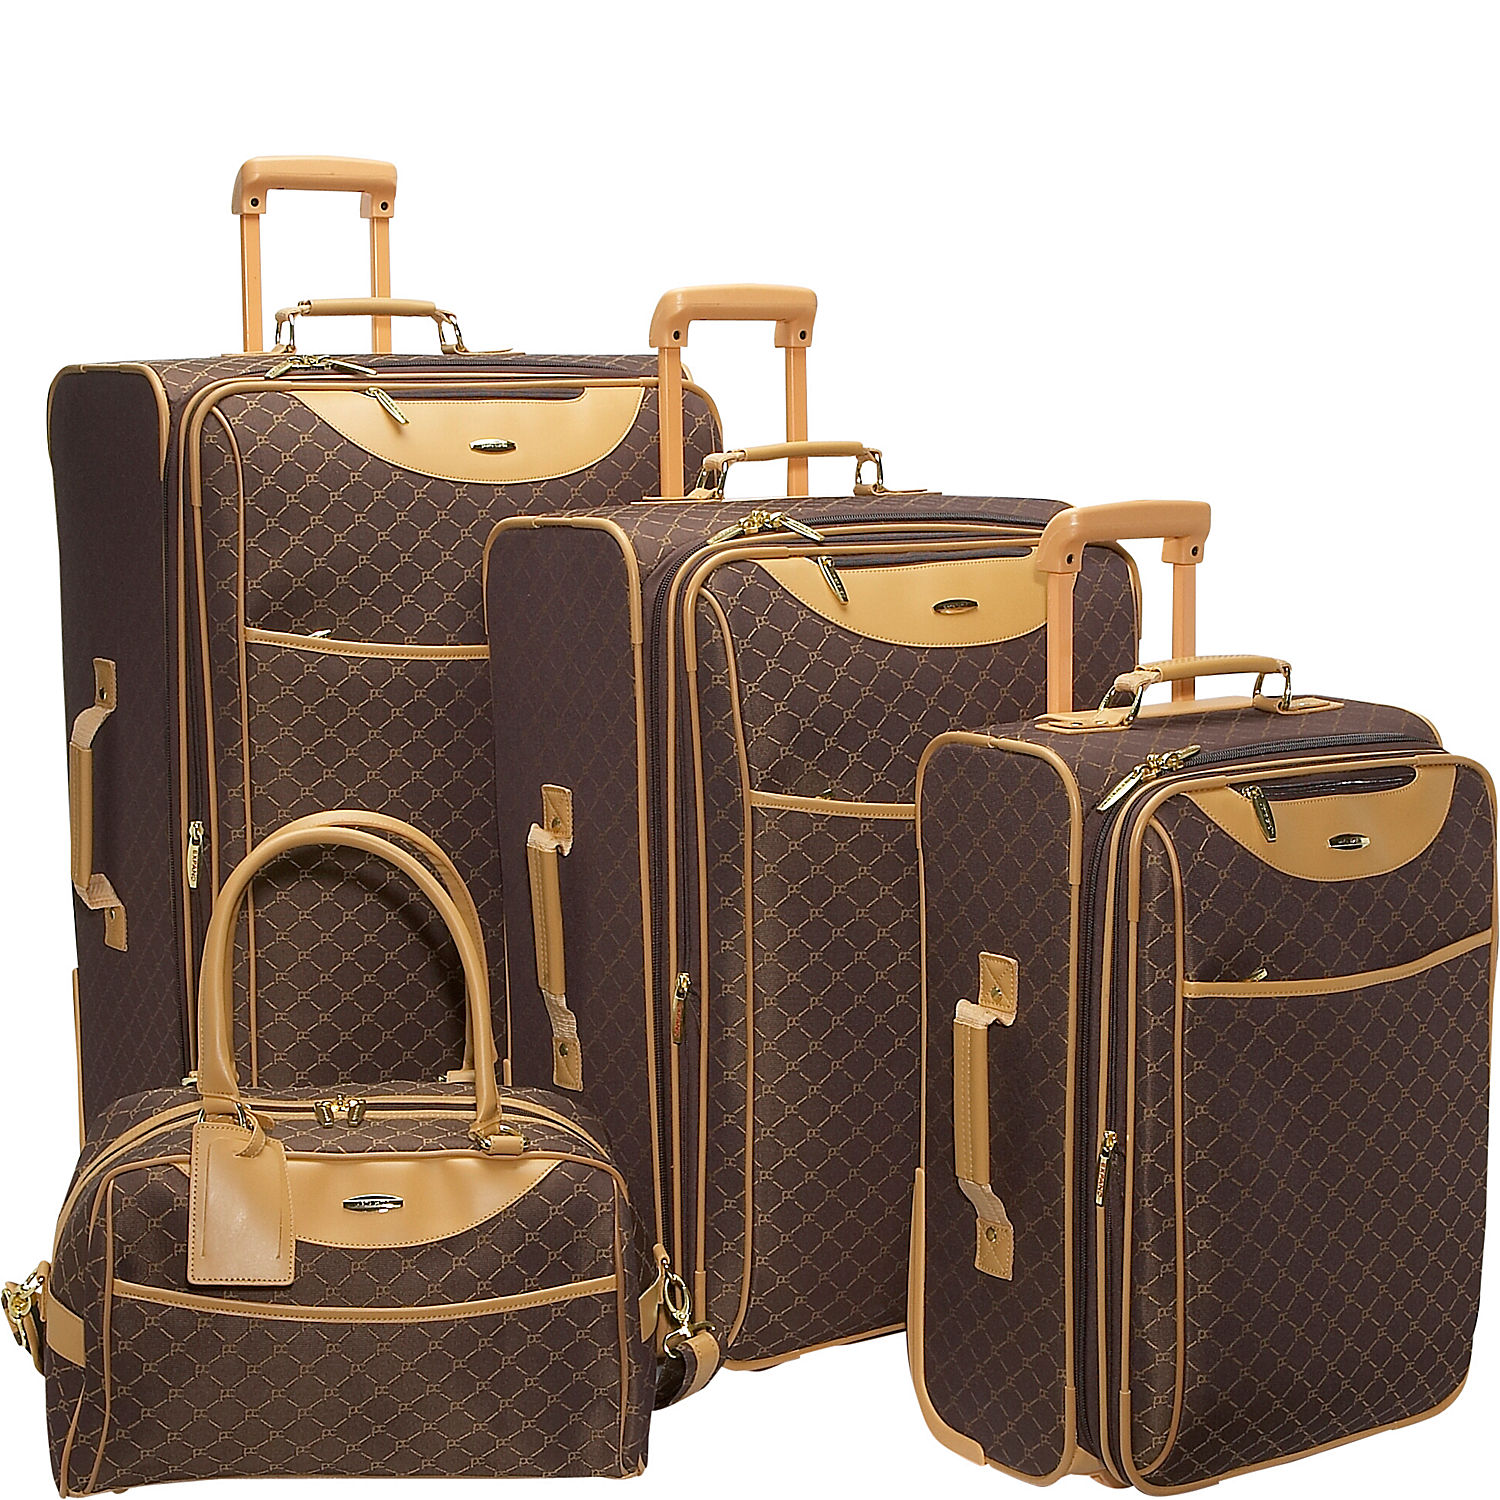 Pierre Cardin Four Piece Luggage Spinners